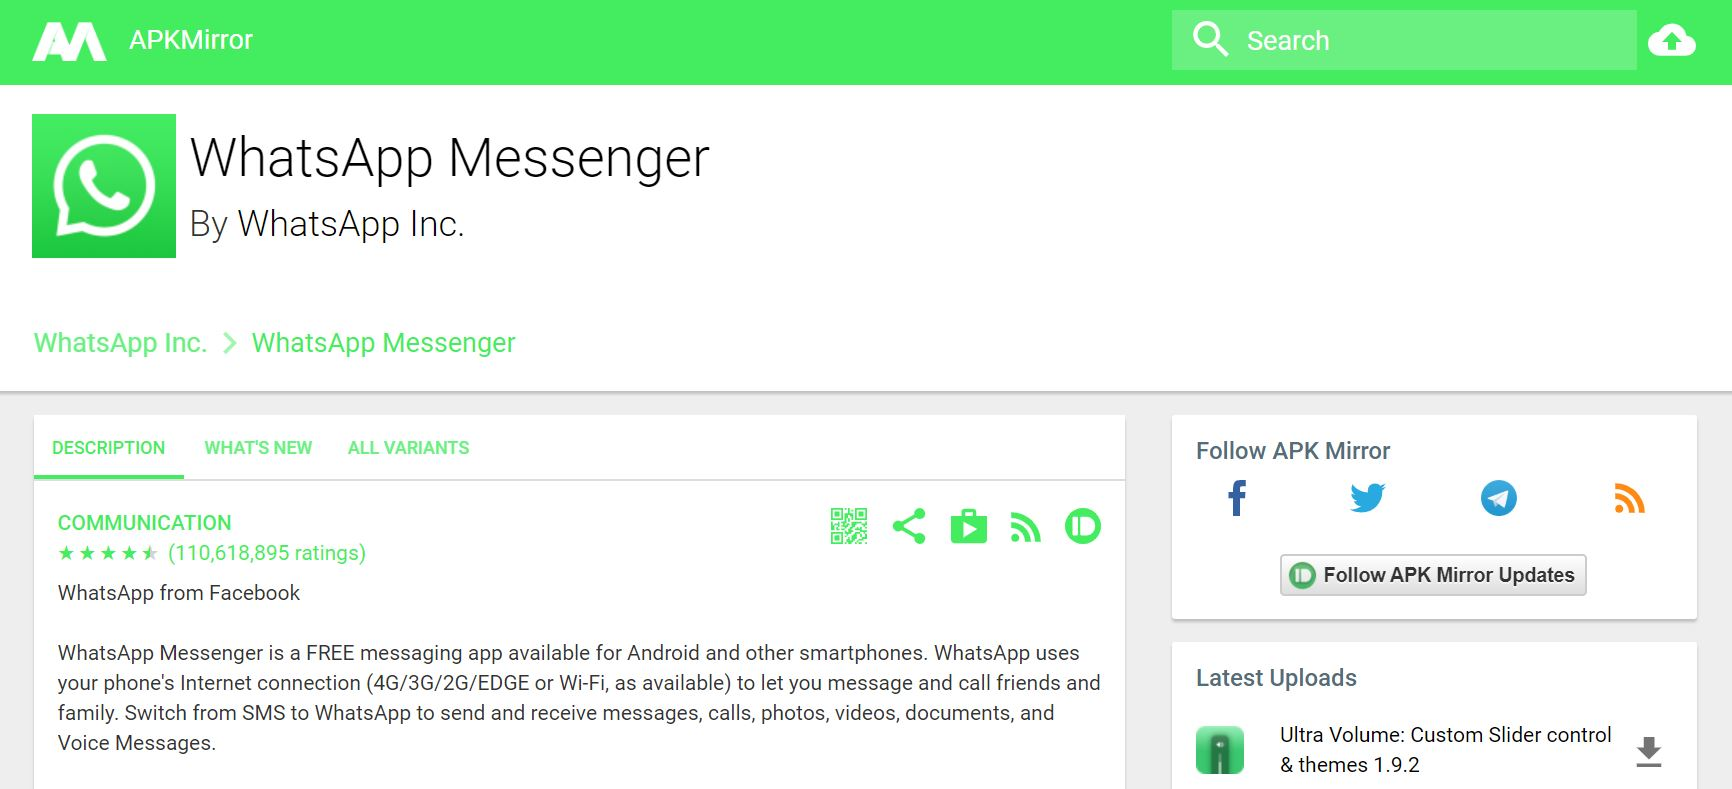 Videollamadas por Whatsapp de hasta 8 personas gracias a la beta disponible en APK Mirror